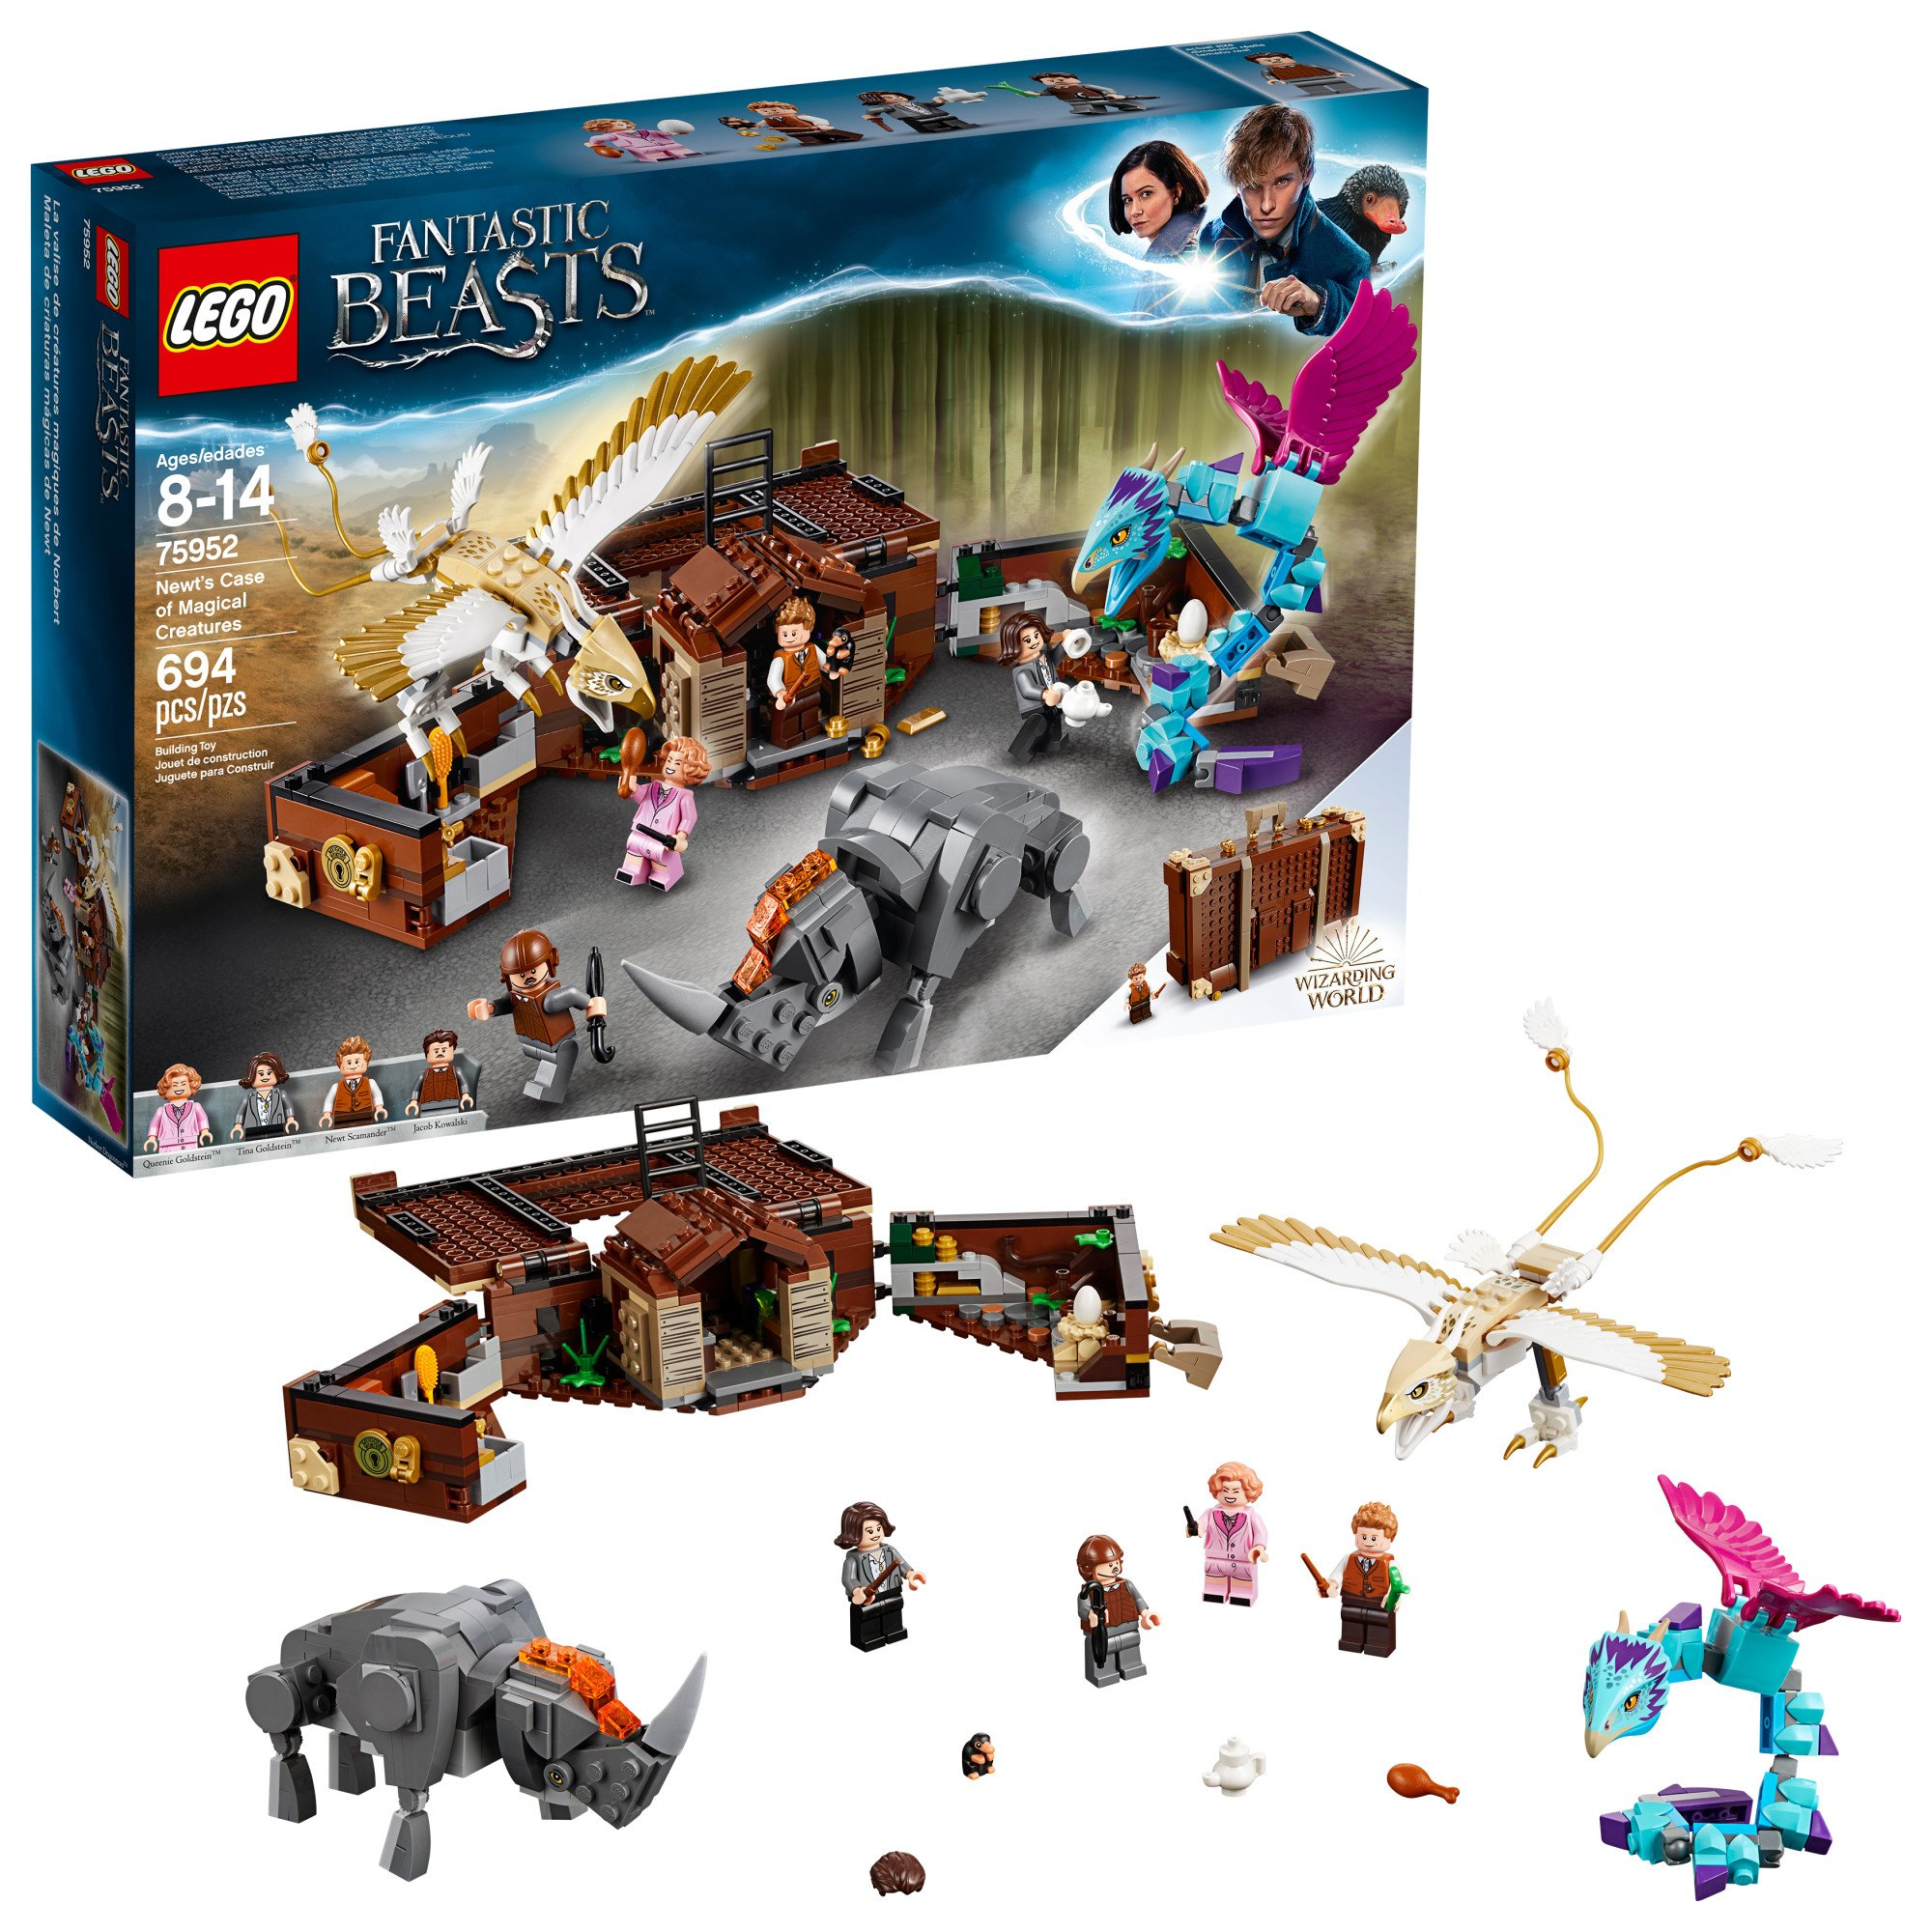 LEGO Fantastic Beasts Newt's Case of Magical Creatures 75952 Building Kit (694 Pieces) (Discontinued by Manufacturer)